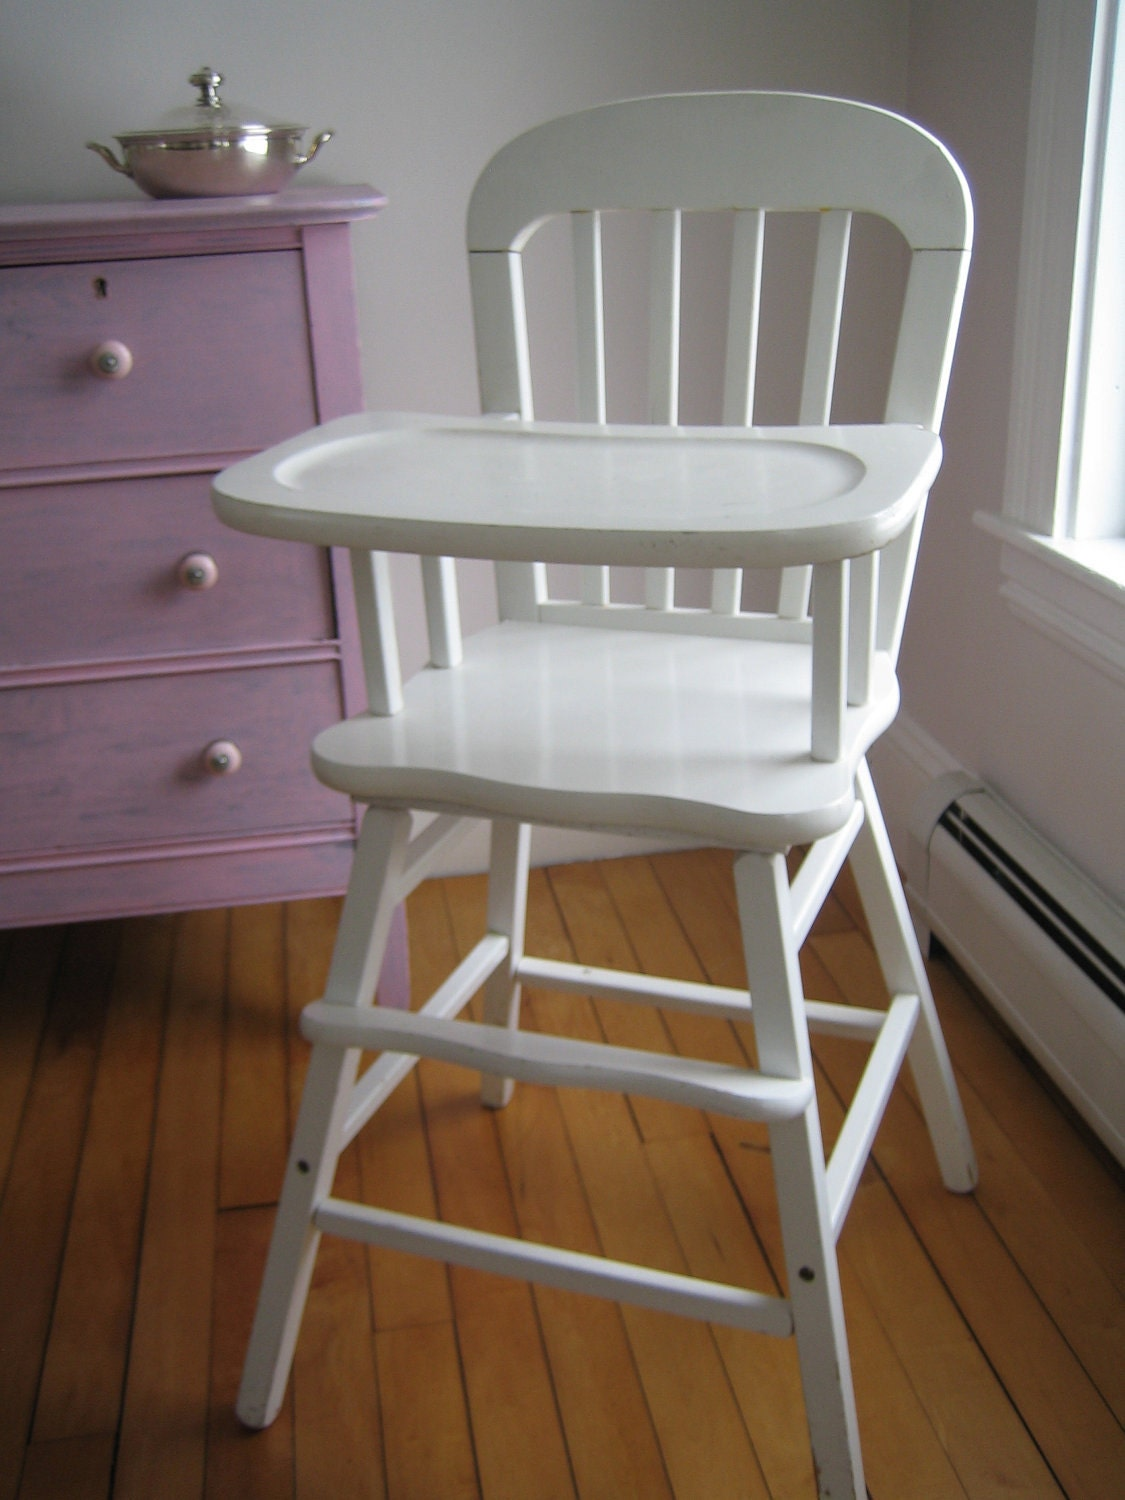 Items similar to Vintage High Chair White on Etsy